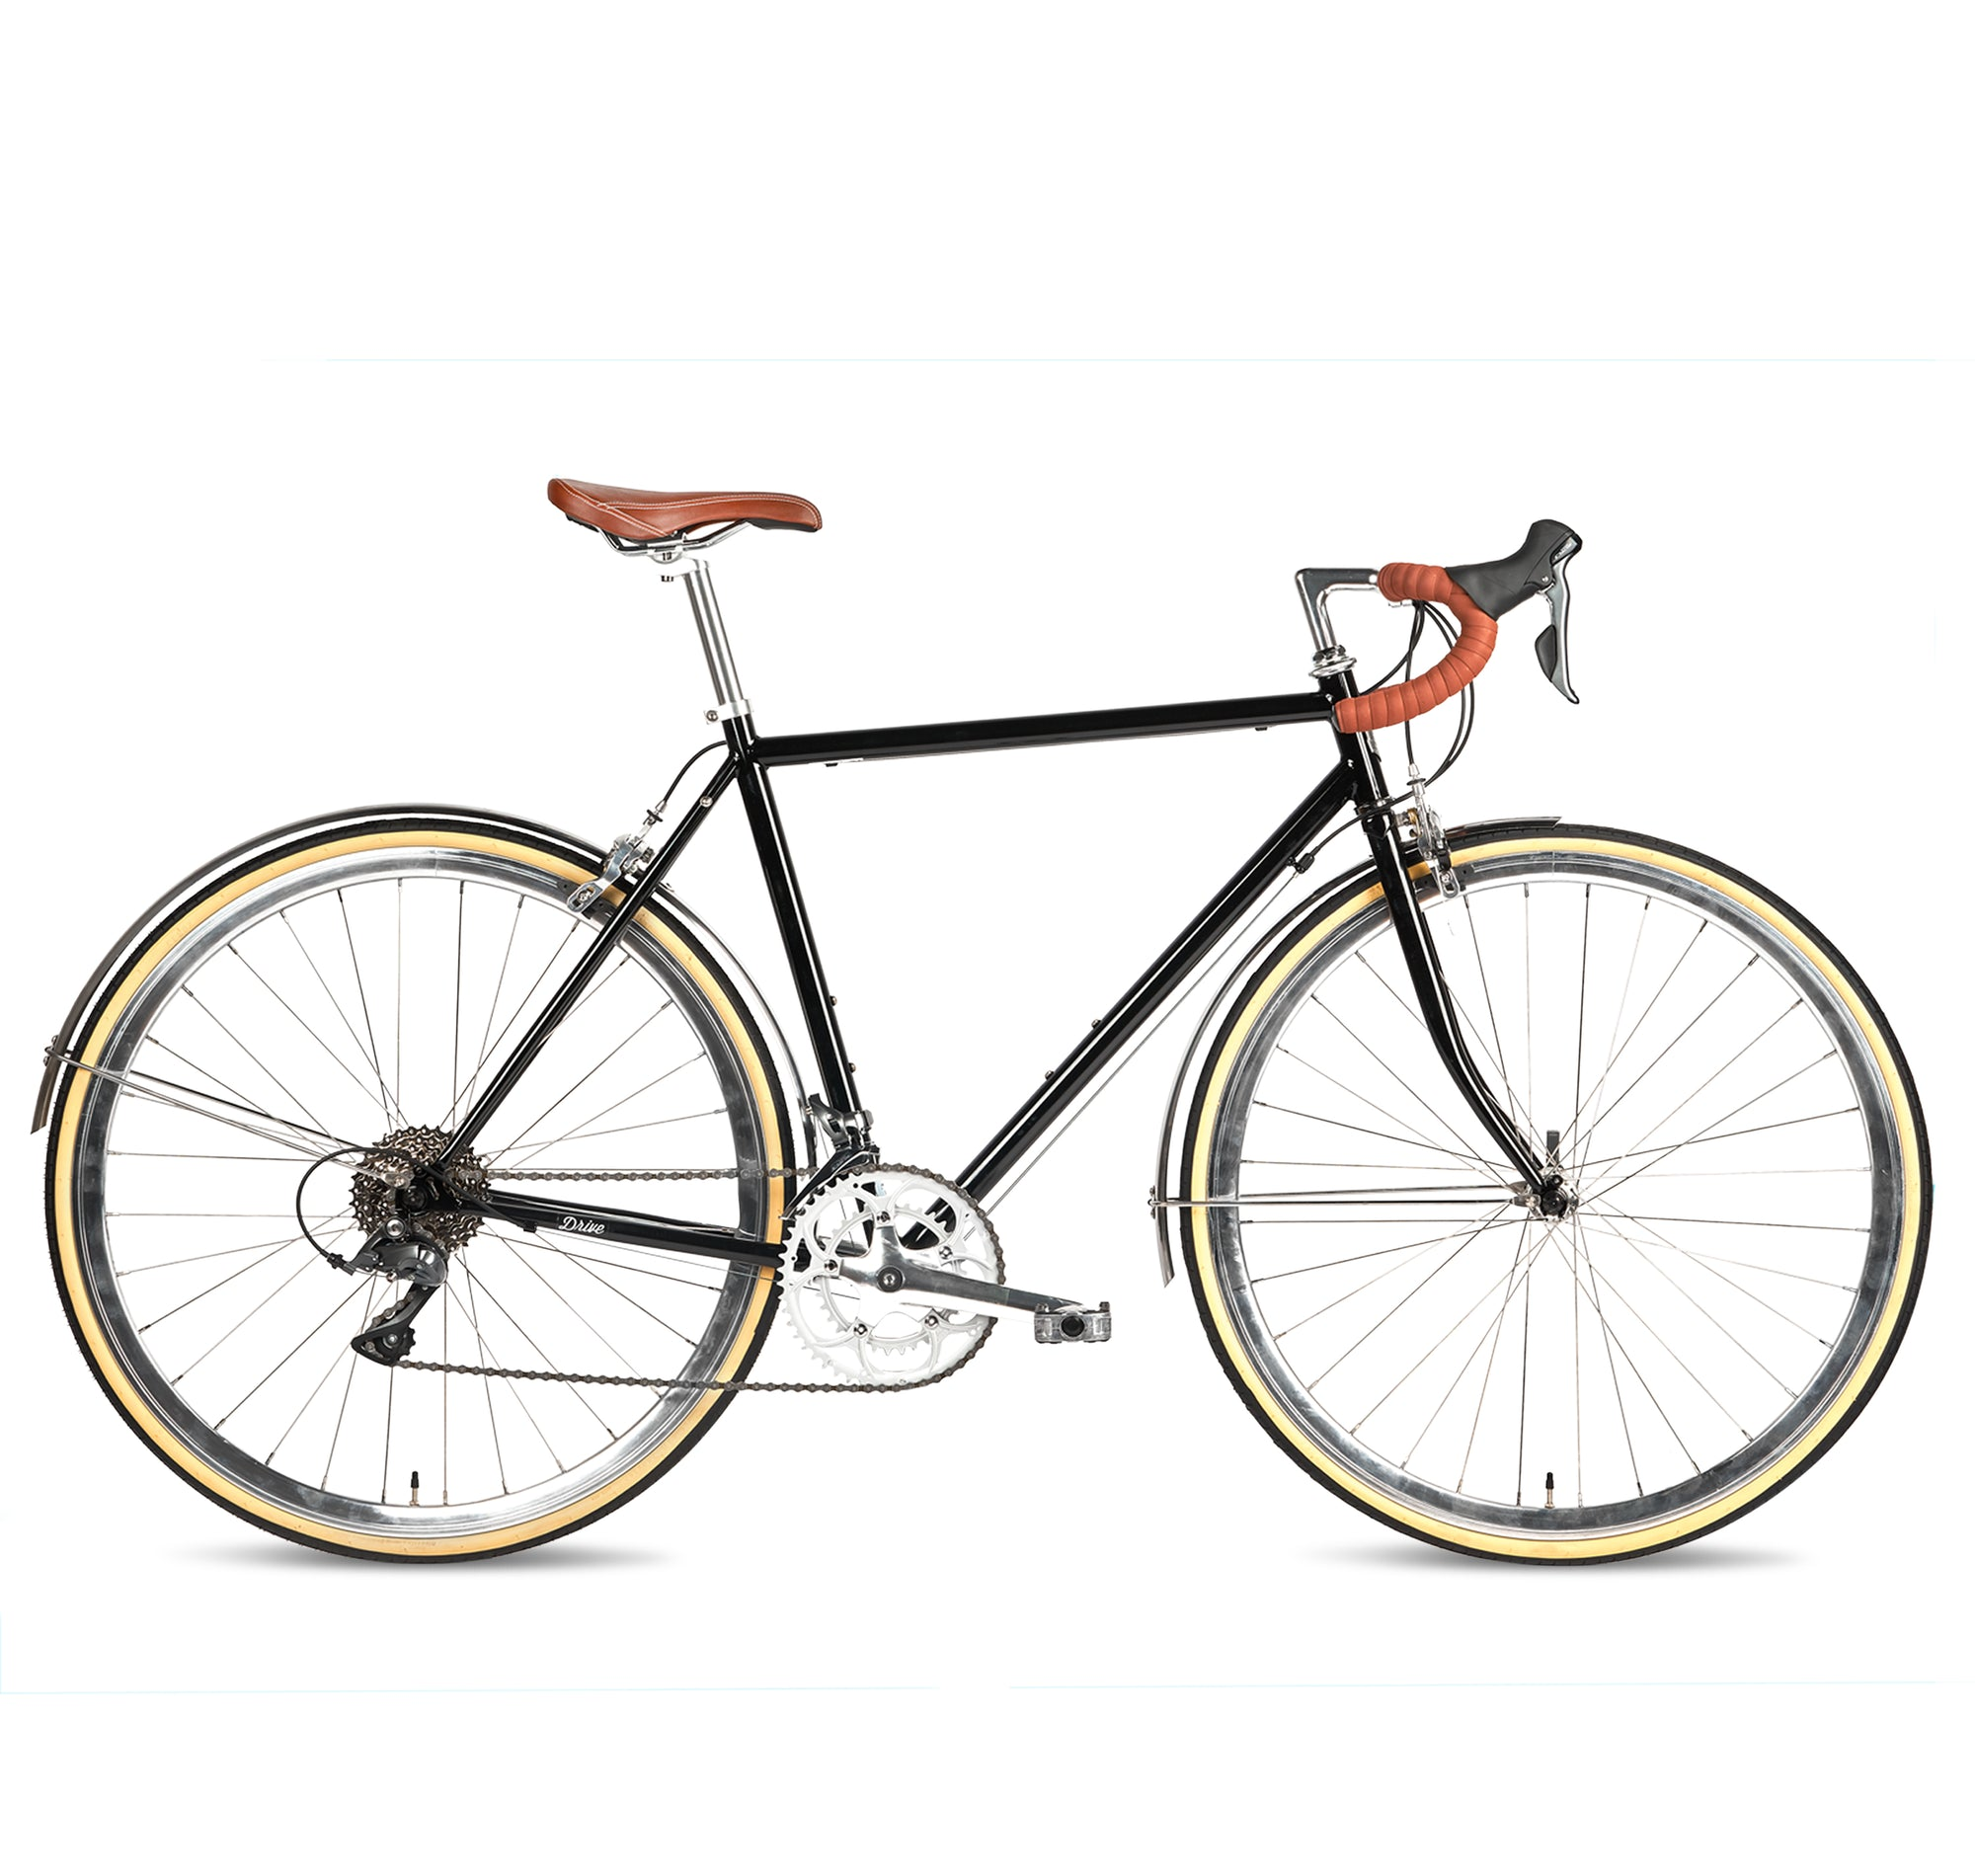 b8a587bce402a3 Populo Drive Mens 16-speed Classic Complete Road Bike - Populo Bikes